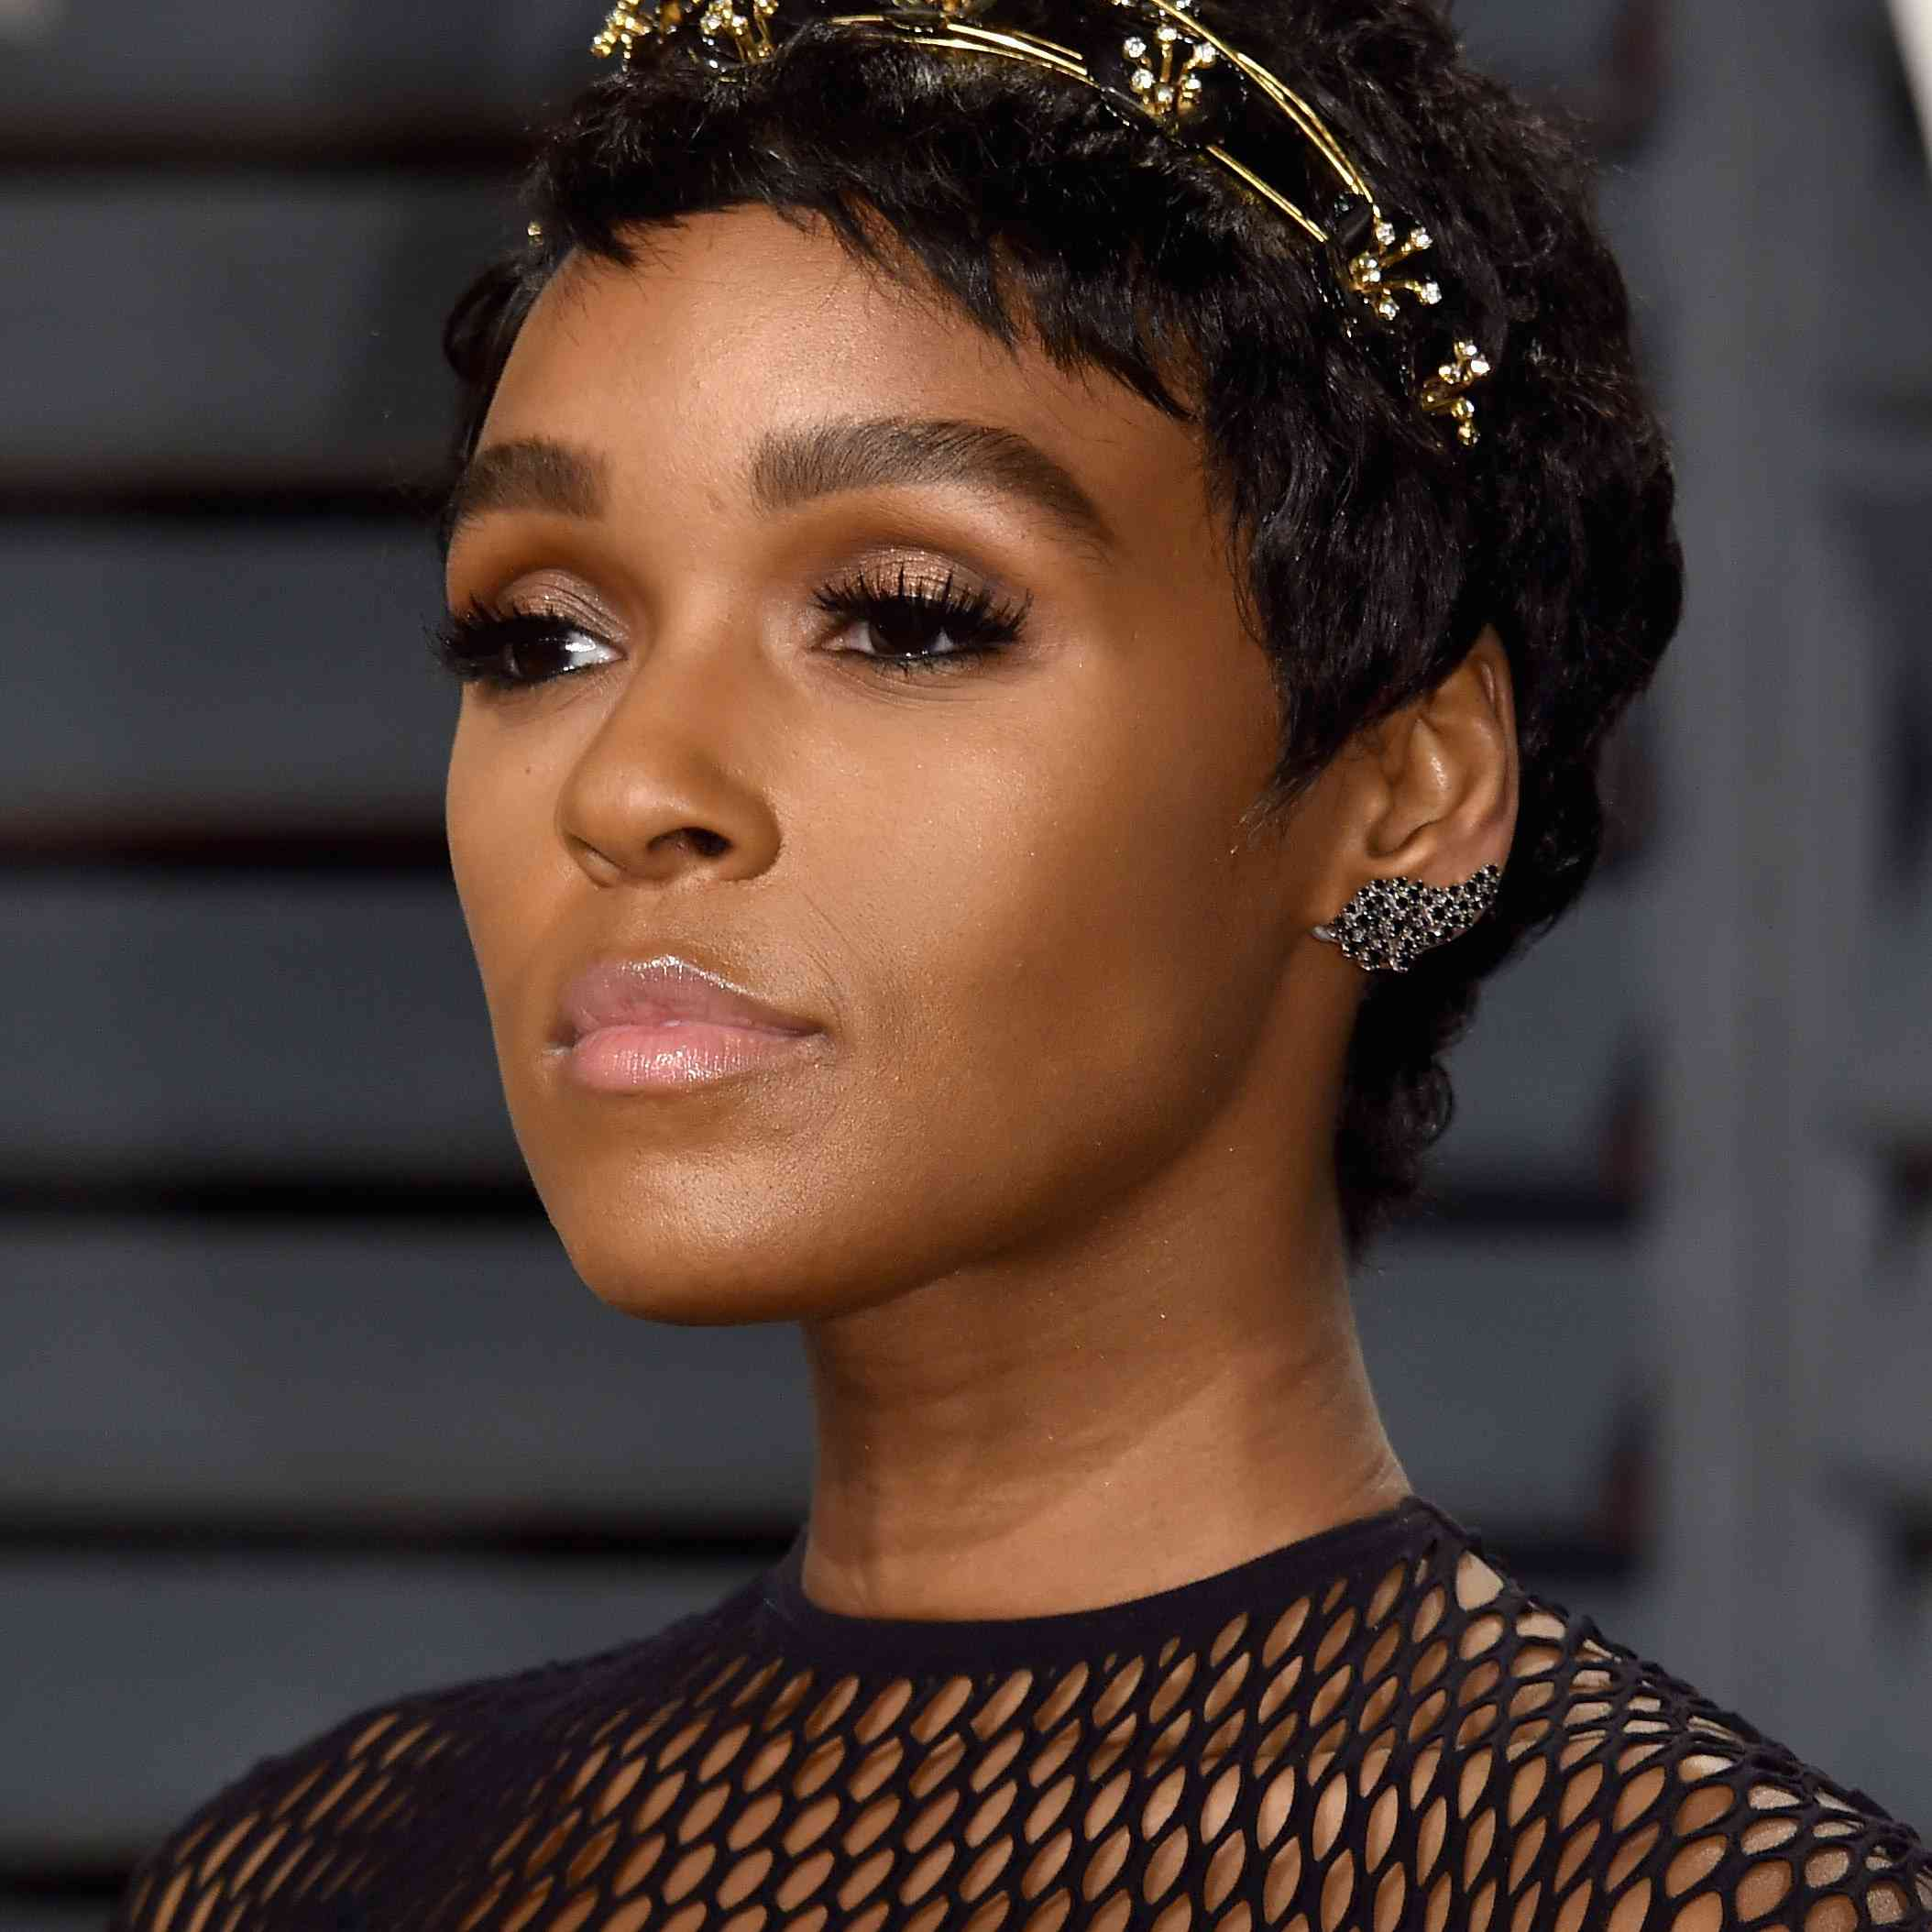 Janelle Monae pixie cut with a headband